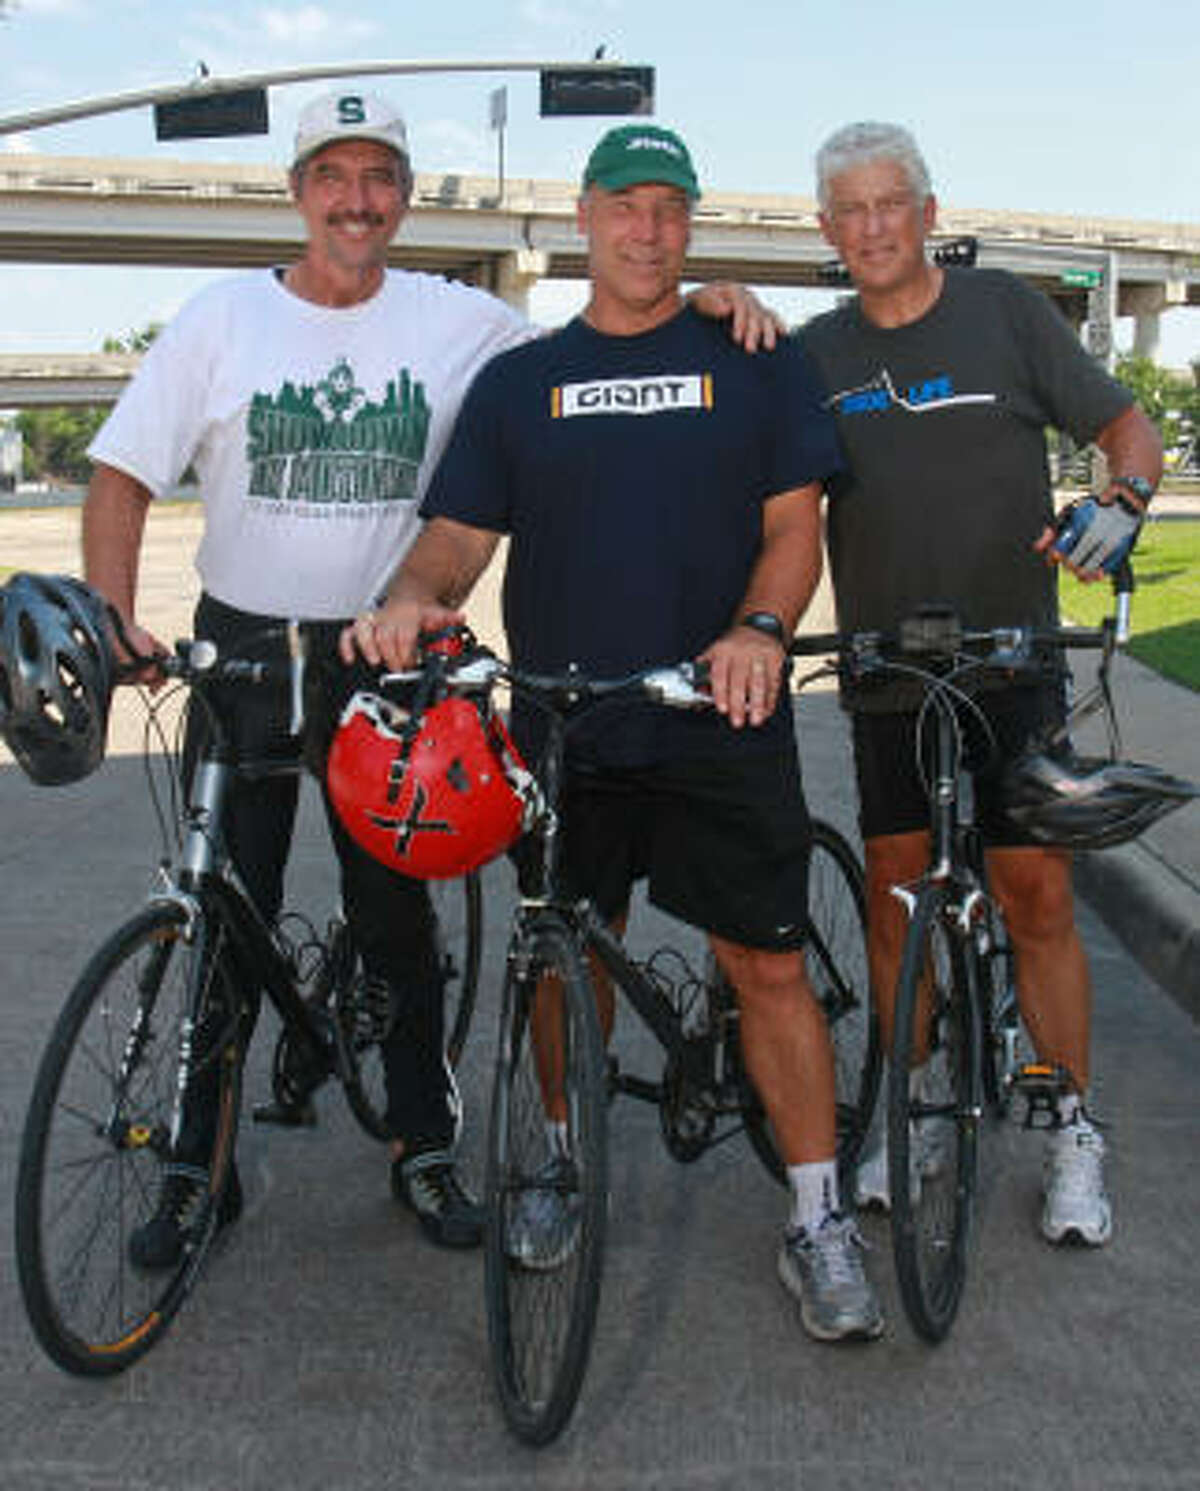 John Shinsky, from left, Joe DeLamielleure and Eljay Bowron are former college football teammates doing a 2,000-mile bicycle ride into Matamoros, Mexico, to raise money for an orphanage.